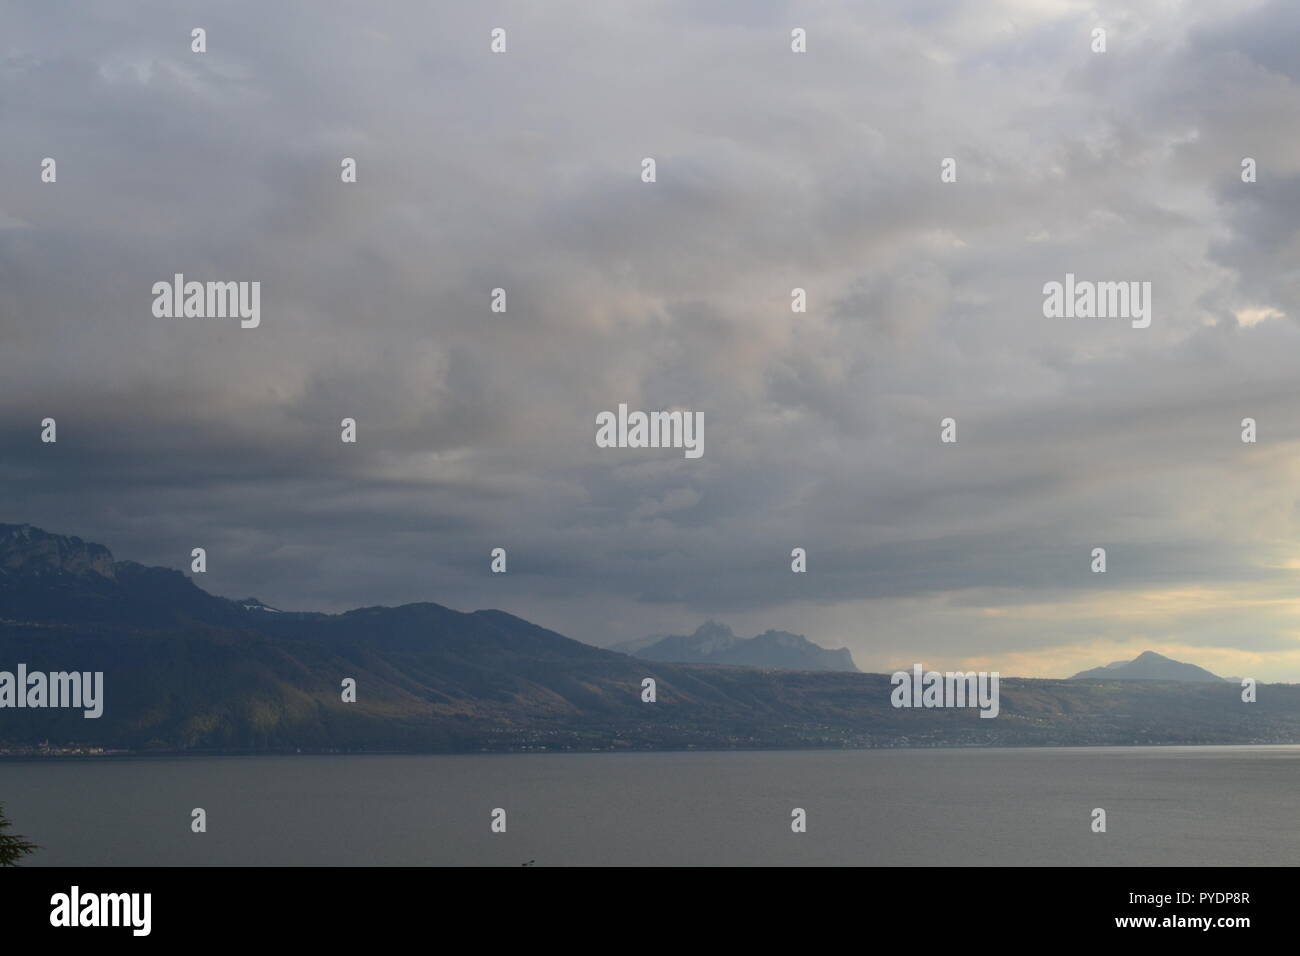 Lake Geneva (Lac Leman) pictured from train passing near Vevey, Vaud, Switzerland - Stock Image